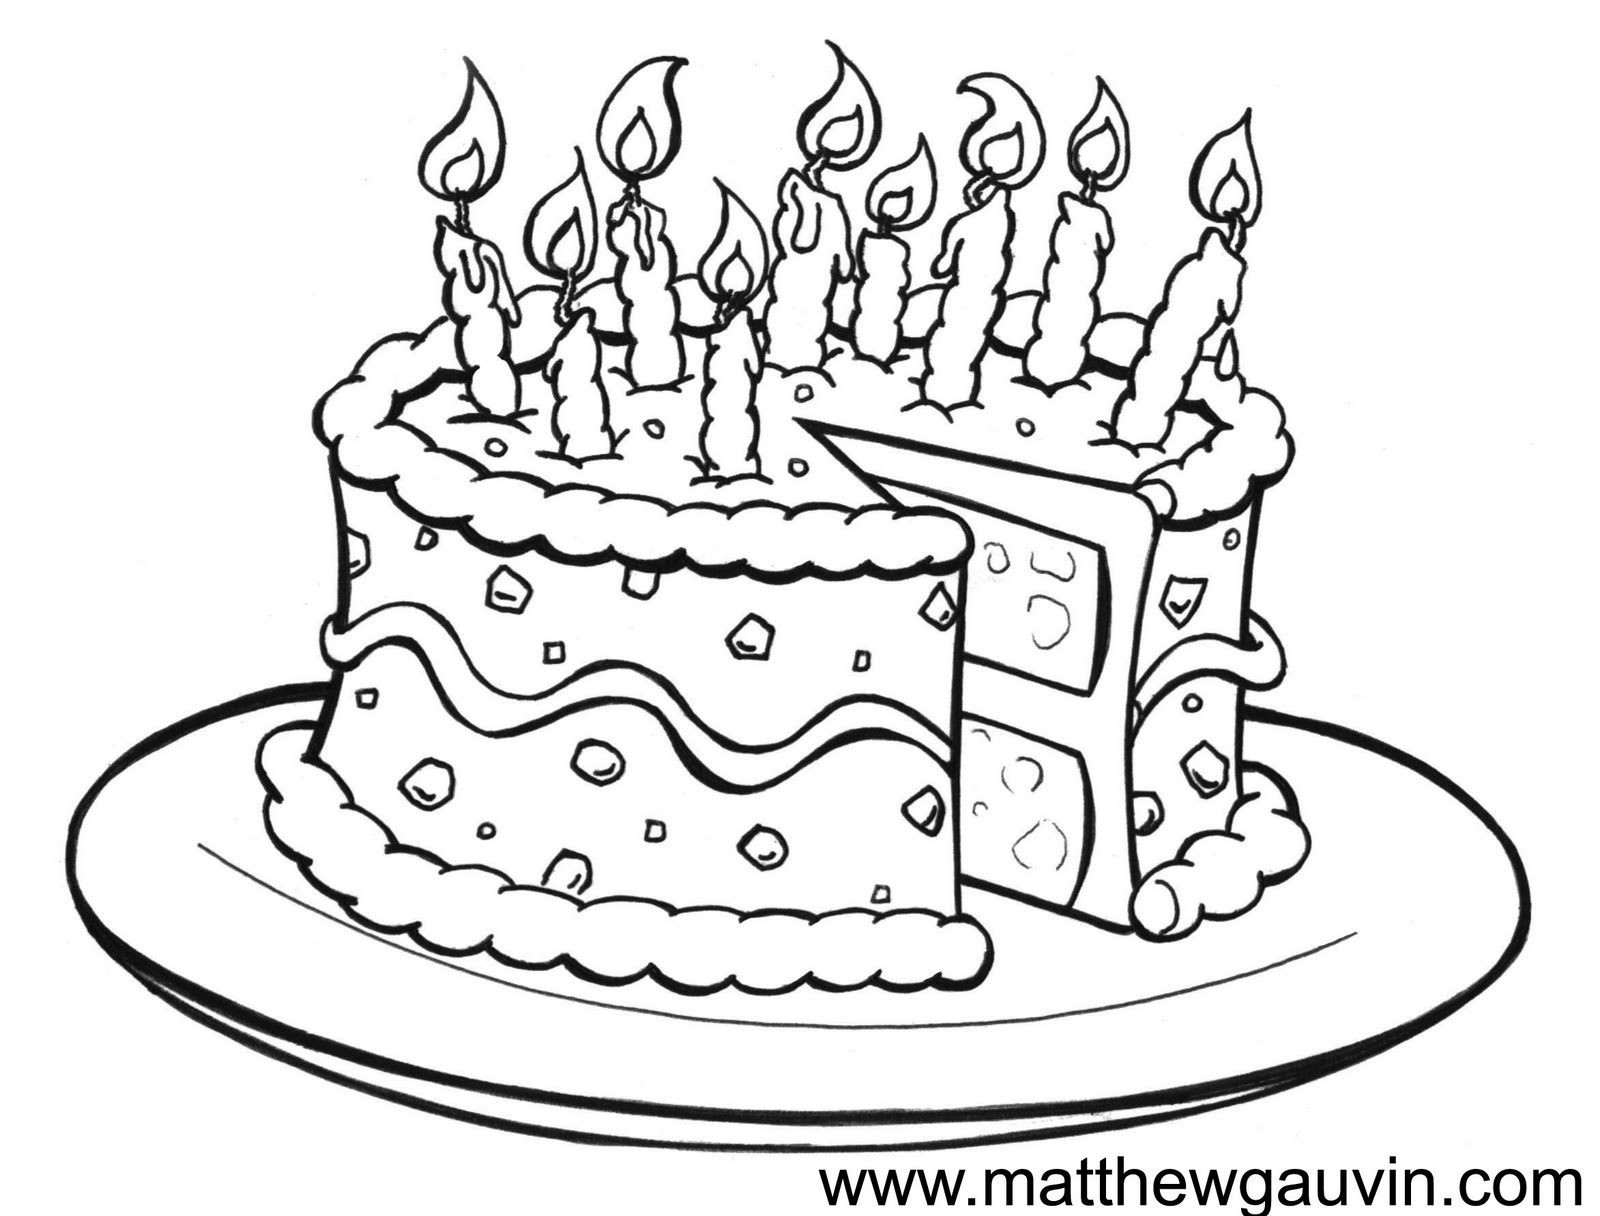 1600x1216 Mg Children's Book Illustrations Birthday Cake Line Drawing